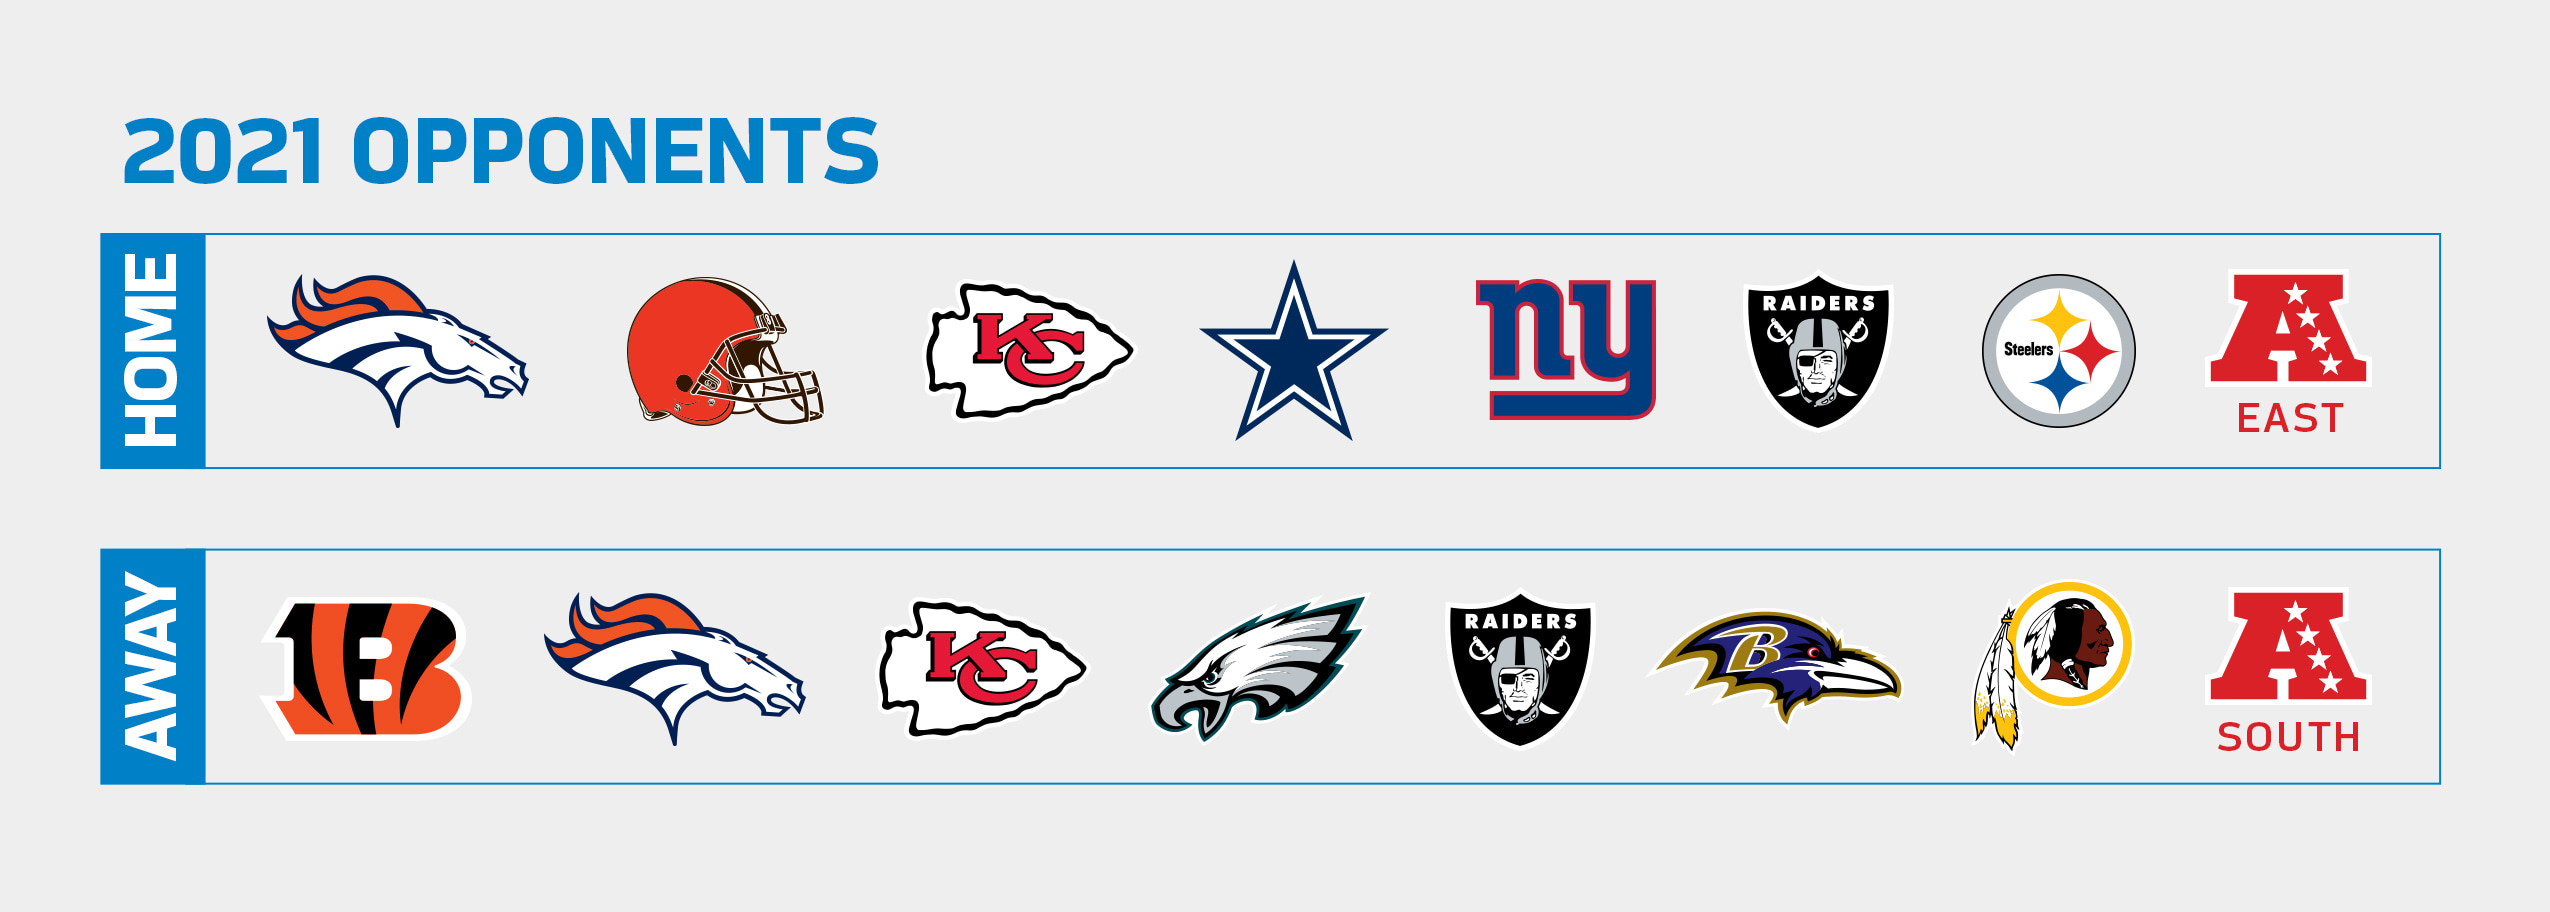 cowboys schedule 2020 season